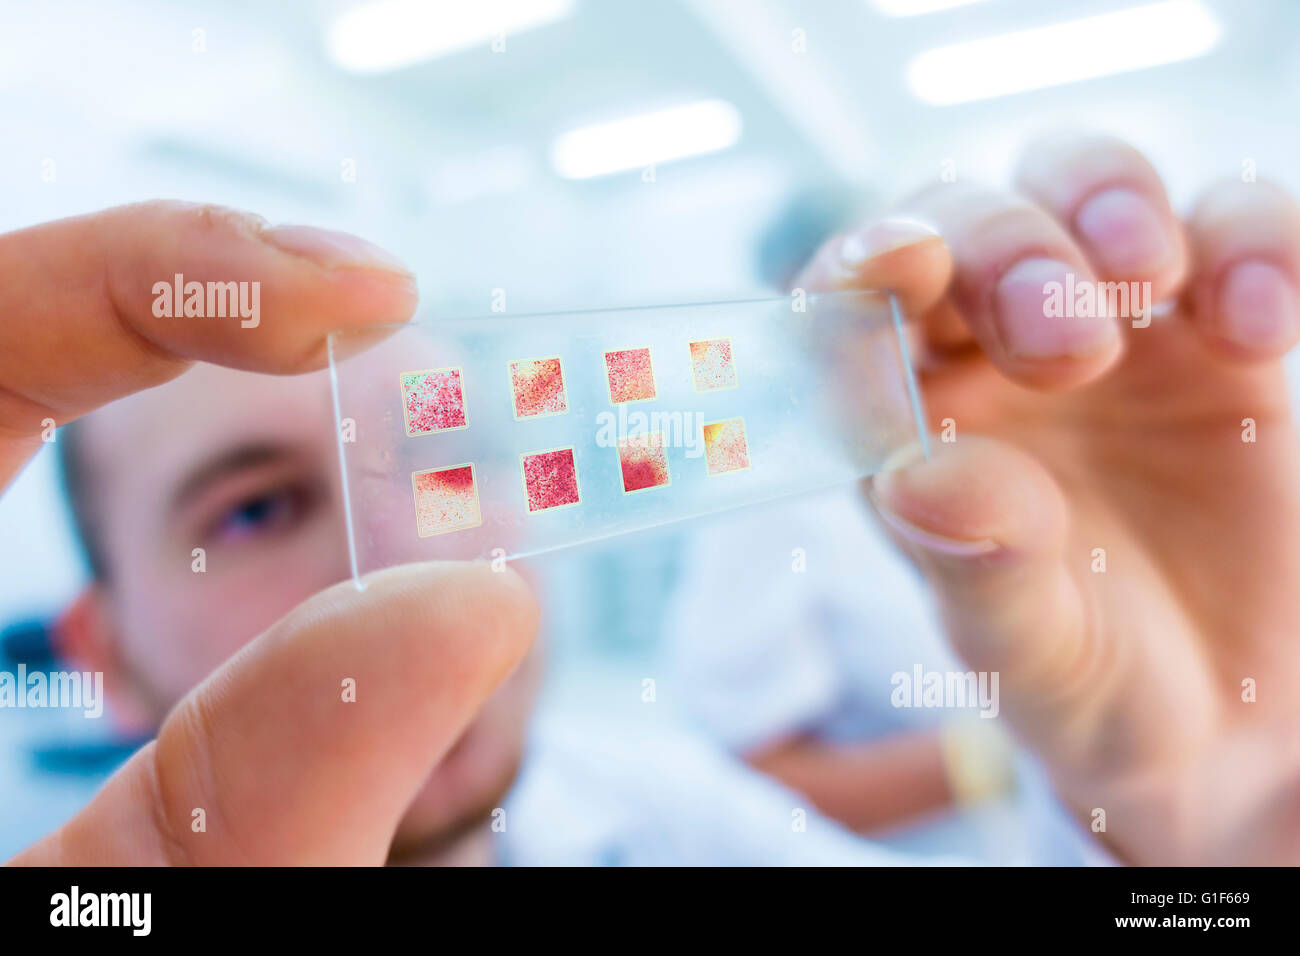 MODEL RELEASED. Lab technician holding microscope slide. - Stock Image